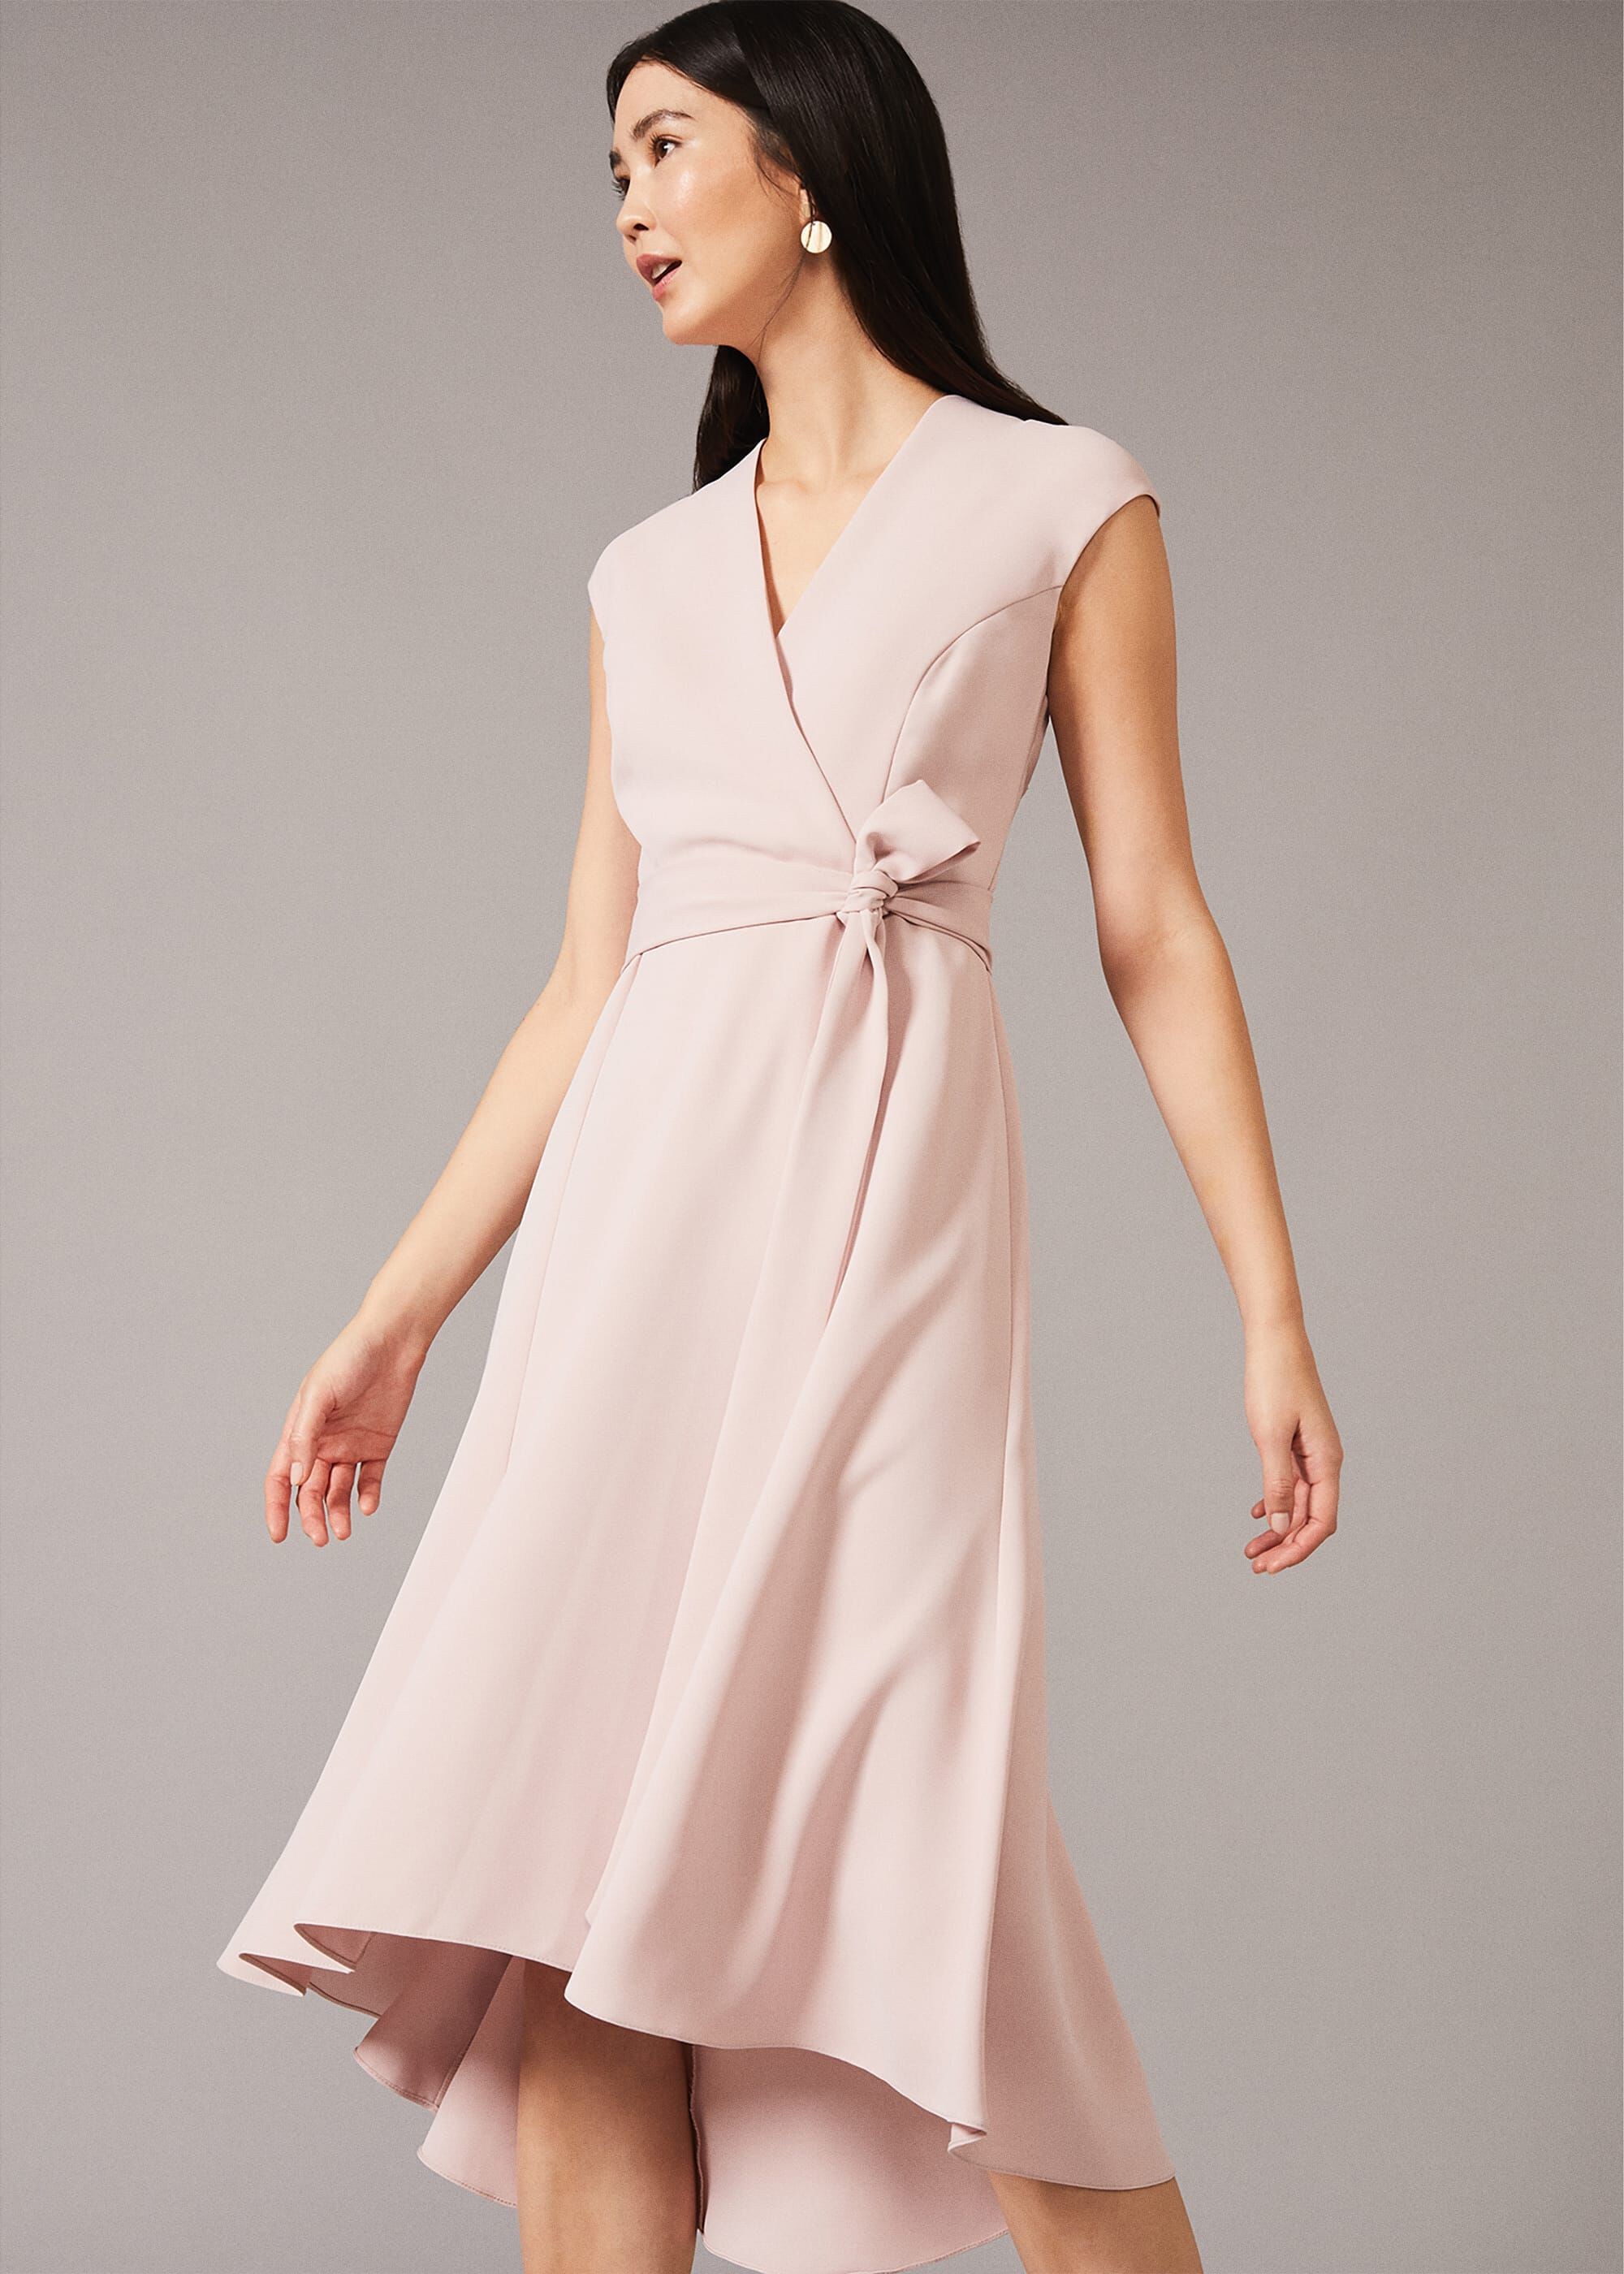 Phase Eight Livvy Belted Midi Dress, Pink, Fit & Flare, Occasion Dress